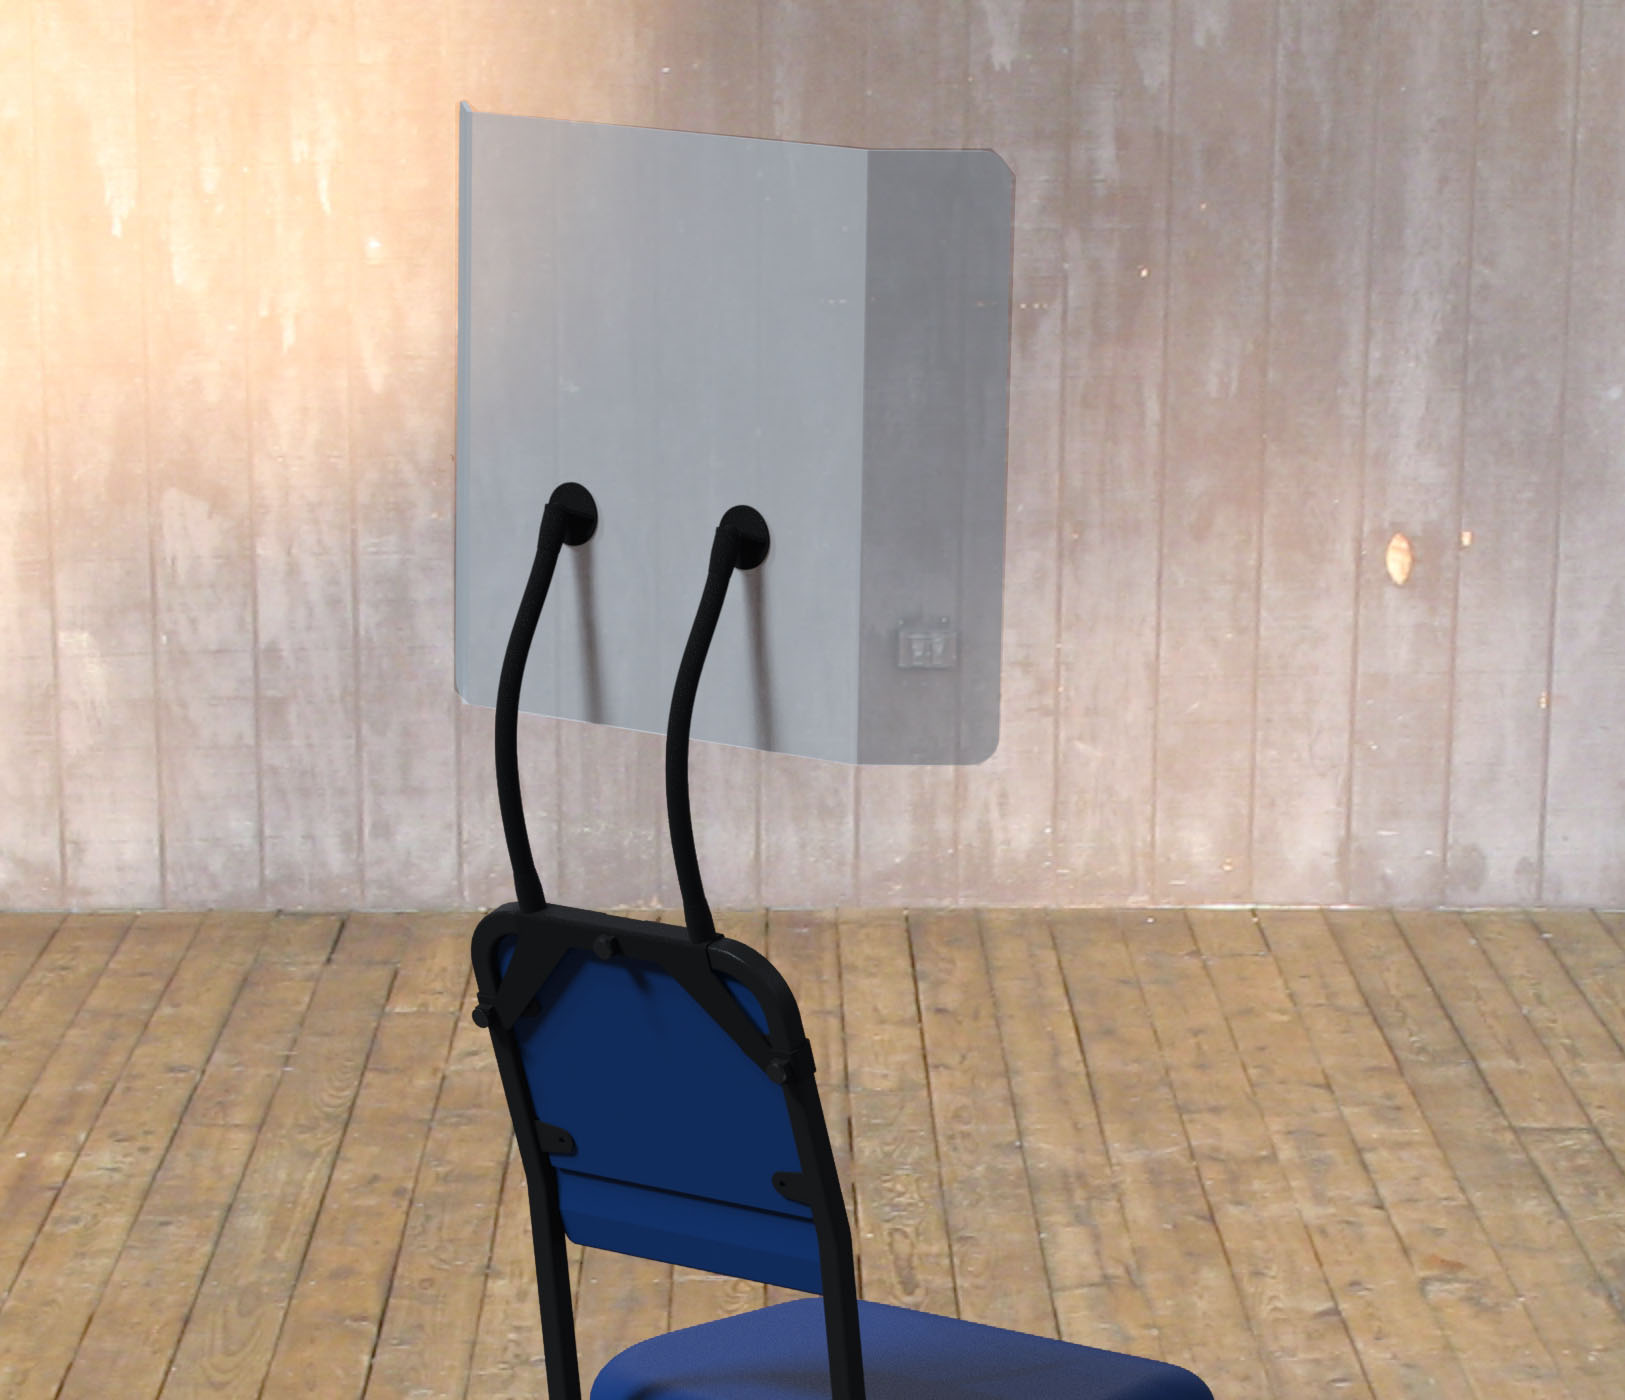 Fine Chairs Ratstands Music Stands Accessories Onthecornerstone Fun Painted Chair Ideas Images Onthecornerstoneorg